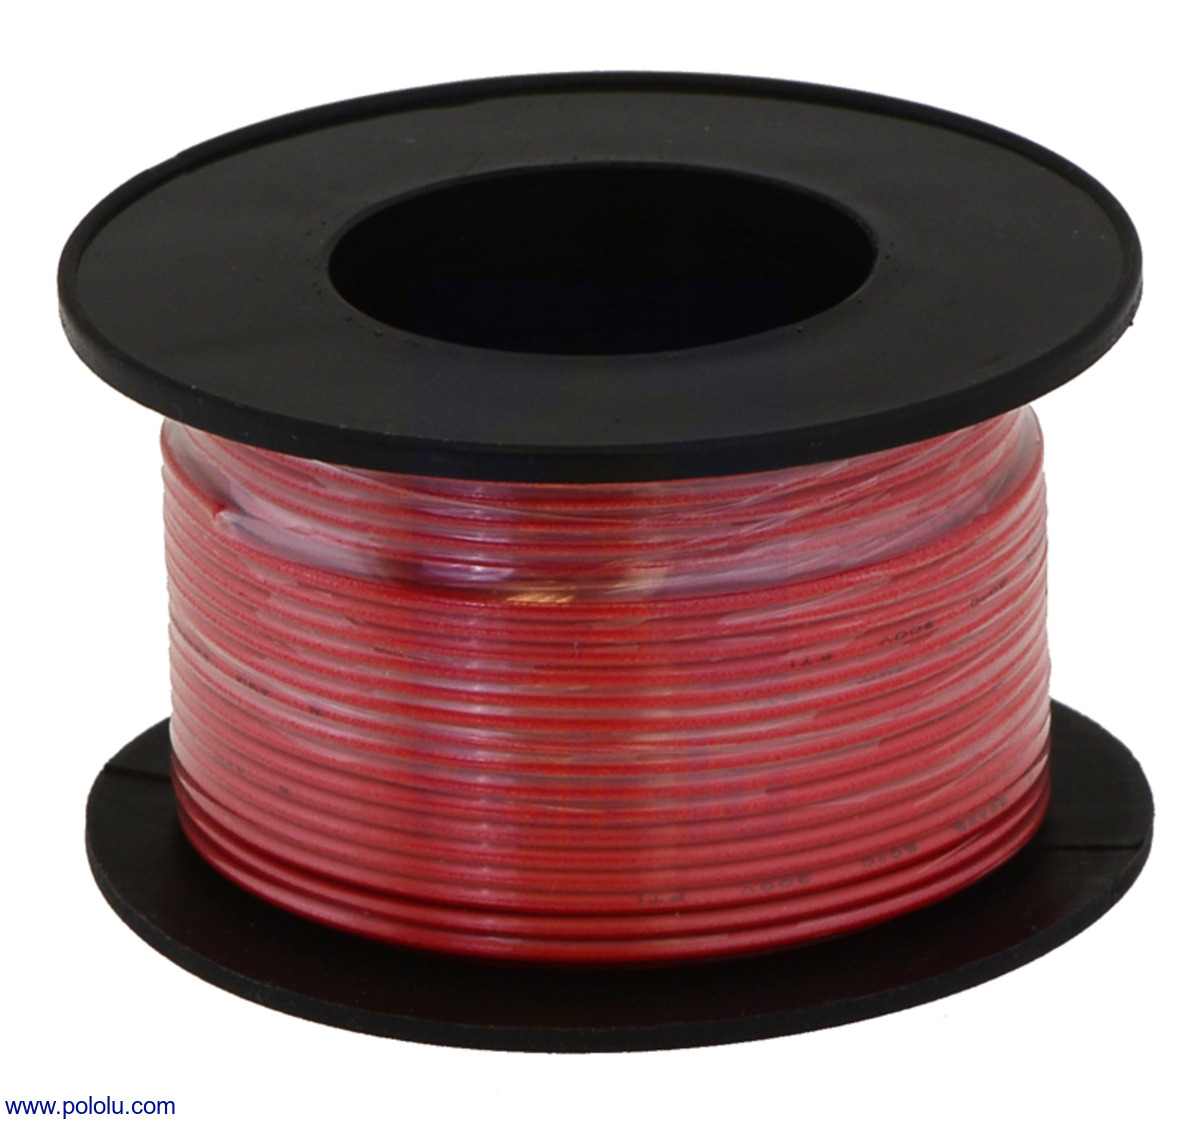 Pololu - Stranded Wire: Red, 22 AWG, 50 Feet